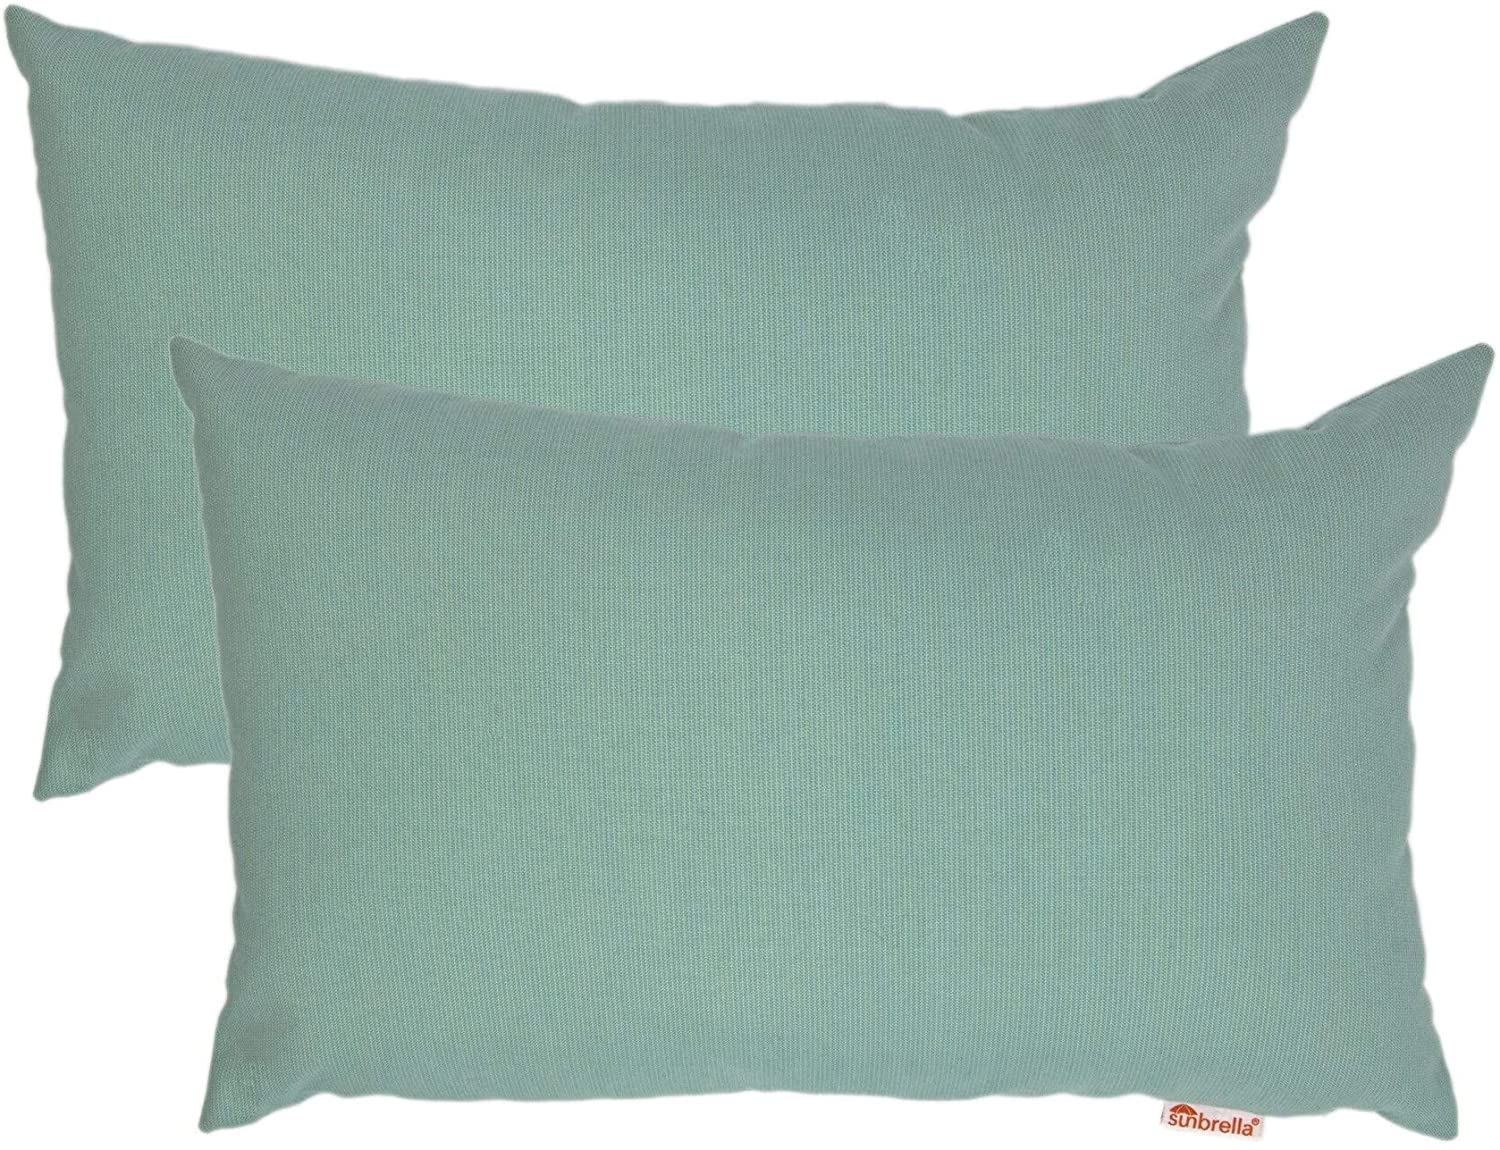 "Mist Boudoir Outdoor Pillow 2 Pack 13"" X 20"" Green Solid Modern Contemporary Removable Cover"